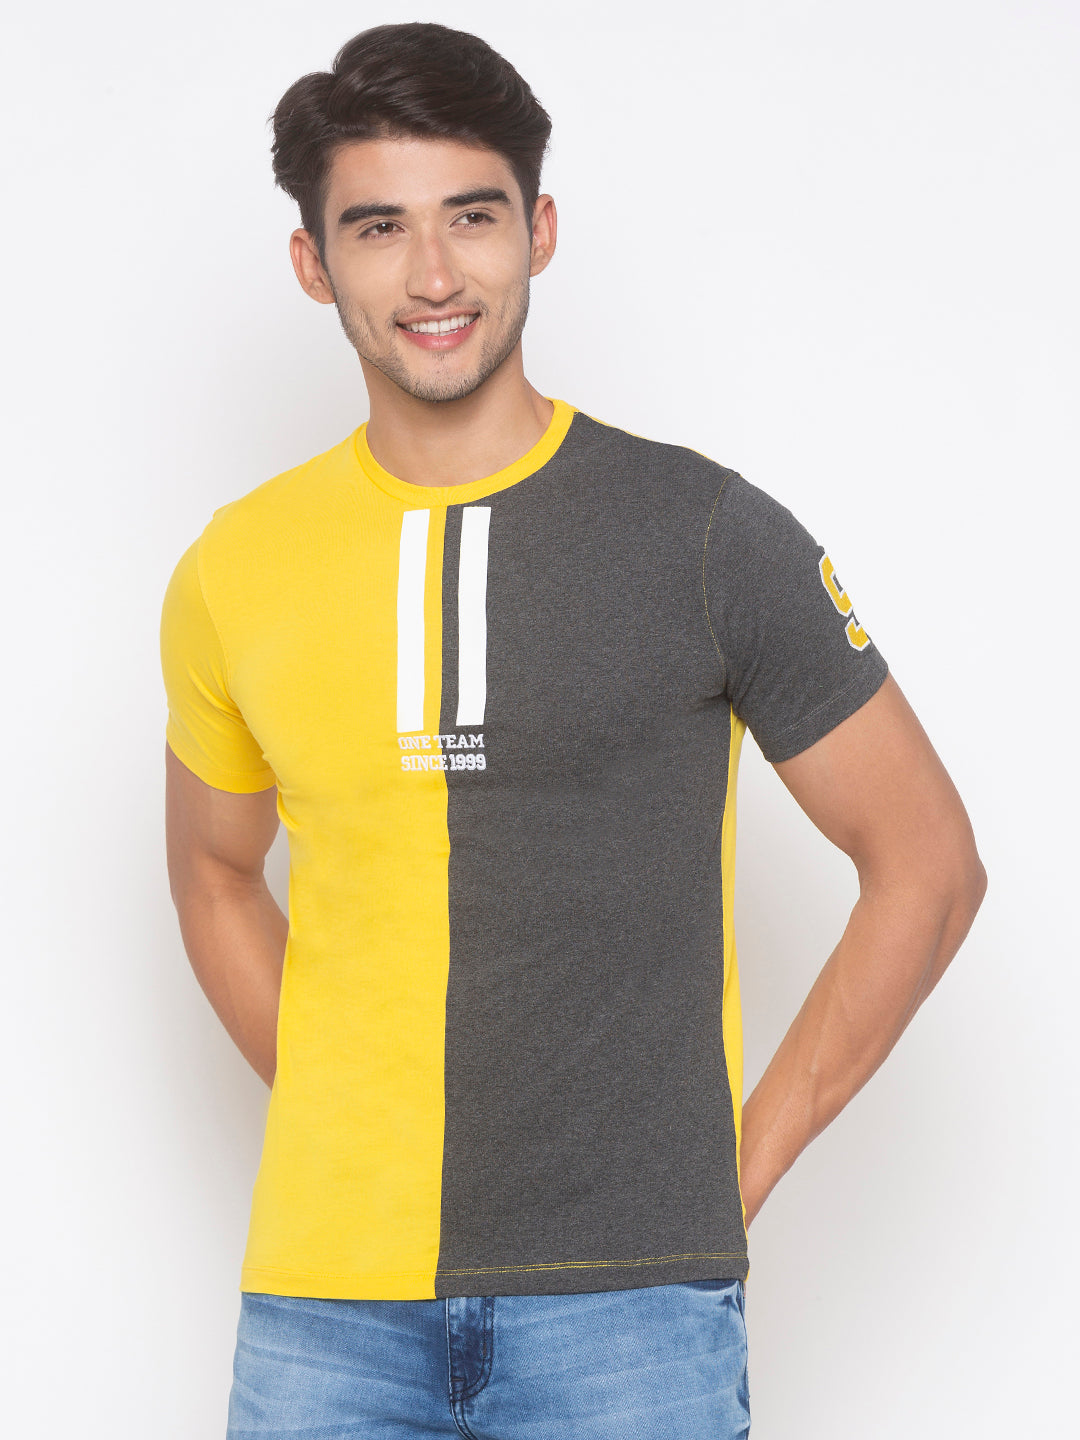 Globus Yellow & Grey Color Block T-Shirt-1